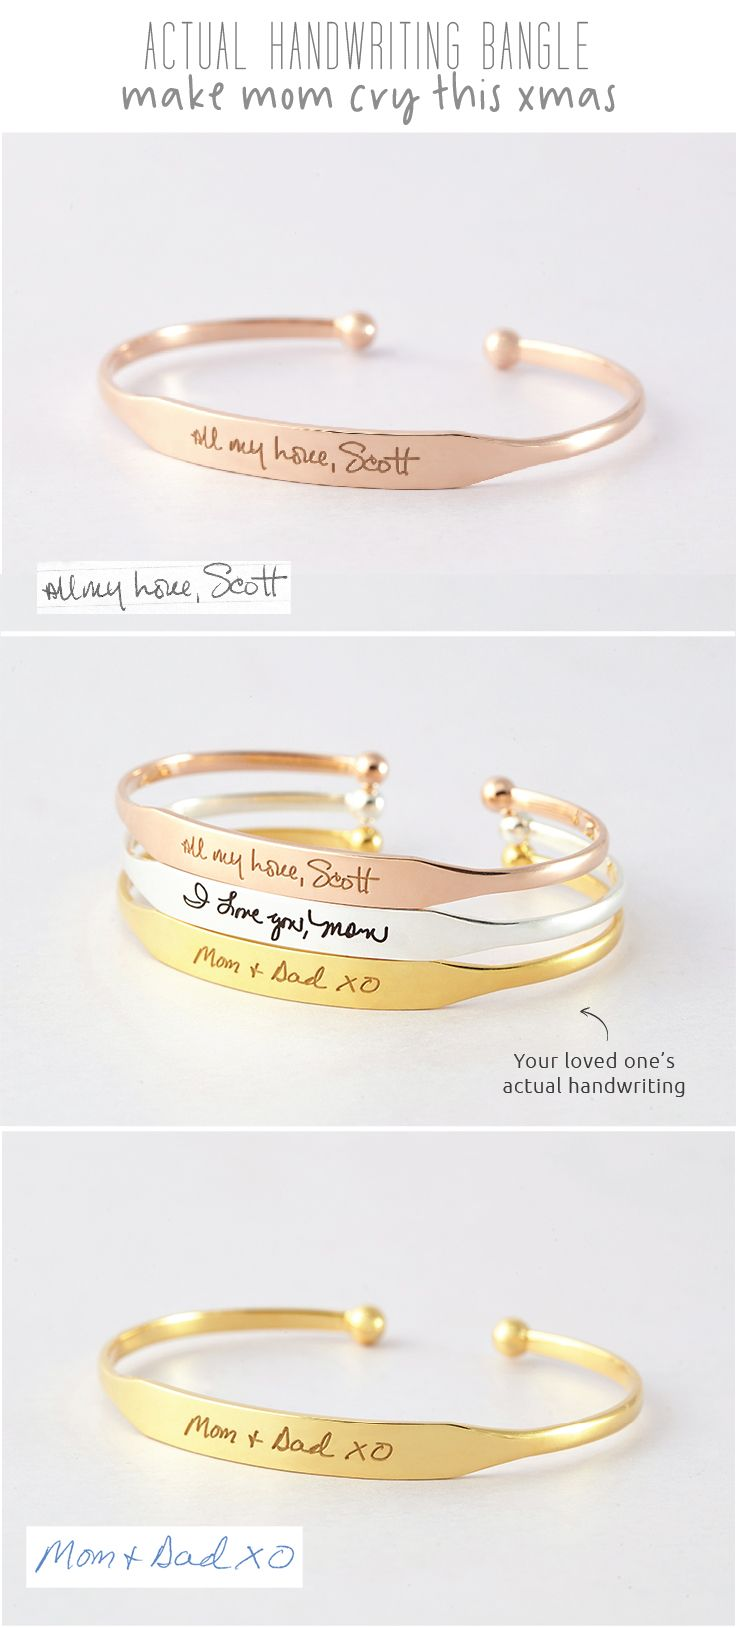 Handwriting Bracelet • Handwriting Cuff Bracelet - Tapered • Cut-out Handwriting Bracelet • Engraved Bar Handwriting Bracelet • Handwriting Bracelet • Actual handwriting jewelry  • Personalized handwriting jewelry • Handwriting gift • Memorial bracelet • Sympathy bracelet • Minimalist jewelry • Remembrance jewelry • christmas gift ideas for mom • creative graduation gifts • birthday gifts for mom birthday • best friend present ideas • gift for a friend